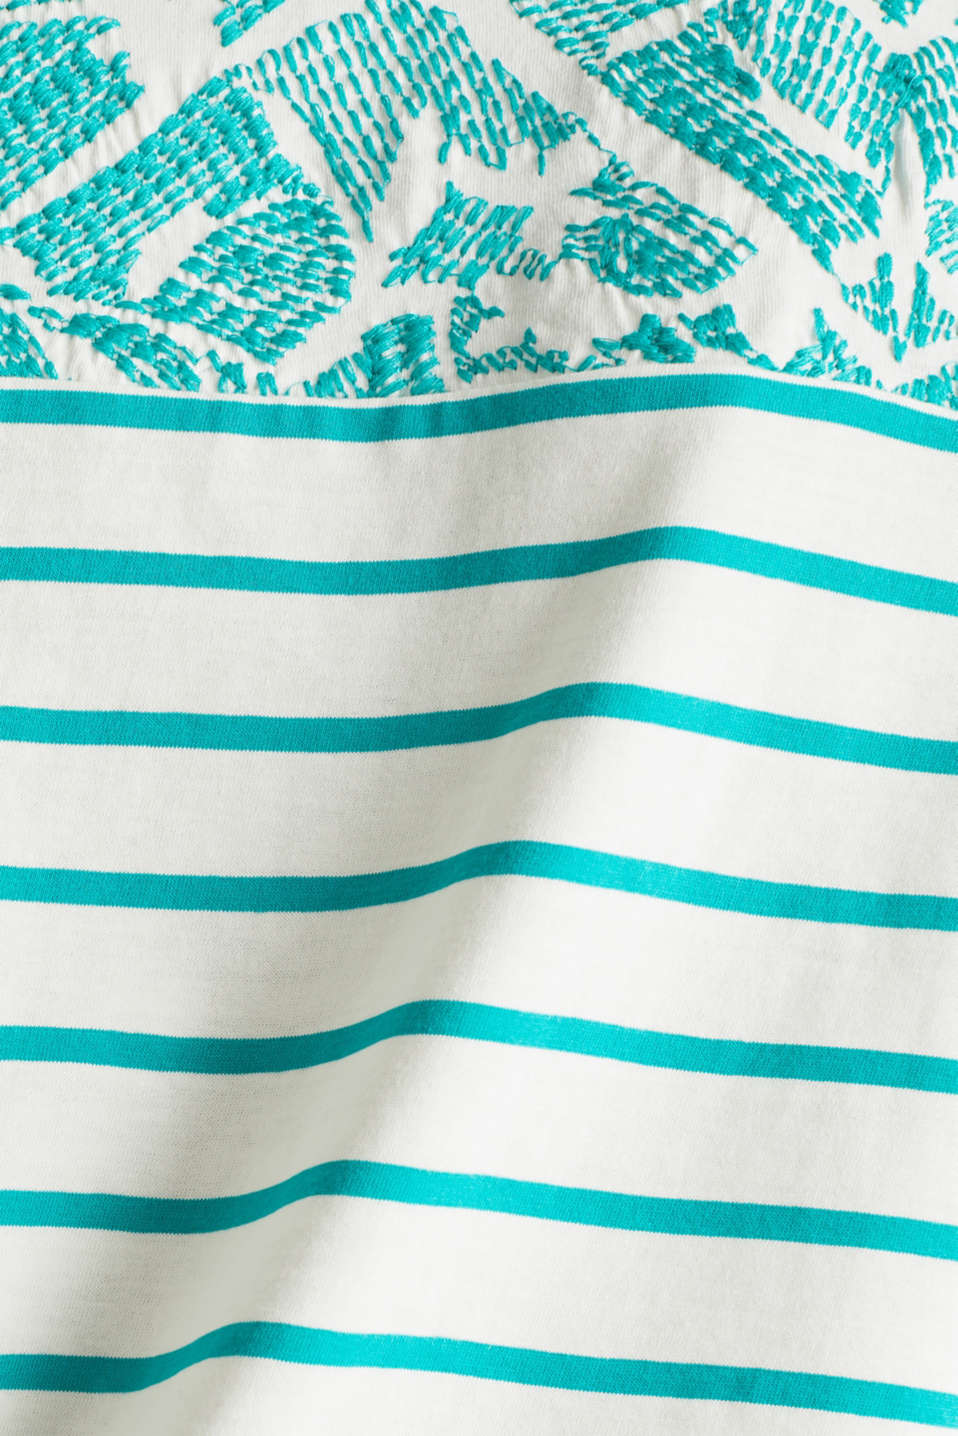 Striped T-shirt with embroidery, 100% organic cotton, TEAL GREEN, detail image number 4